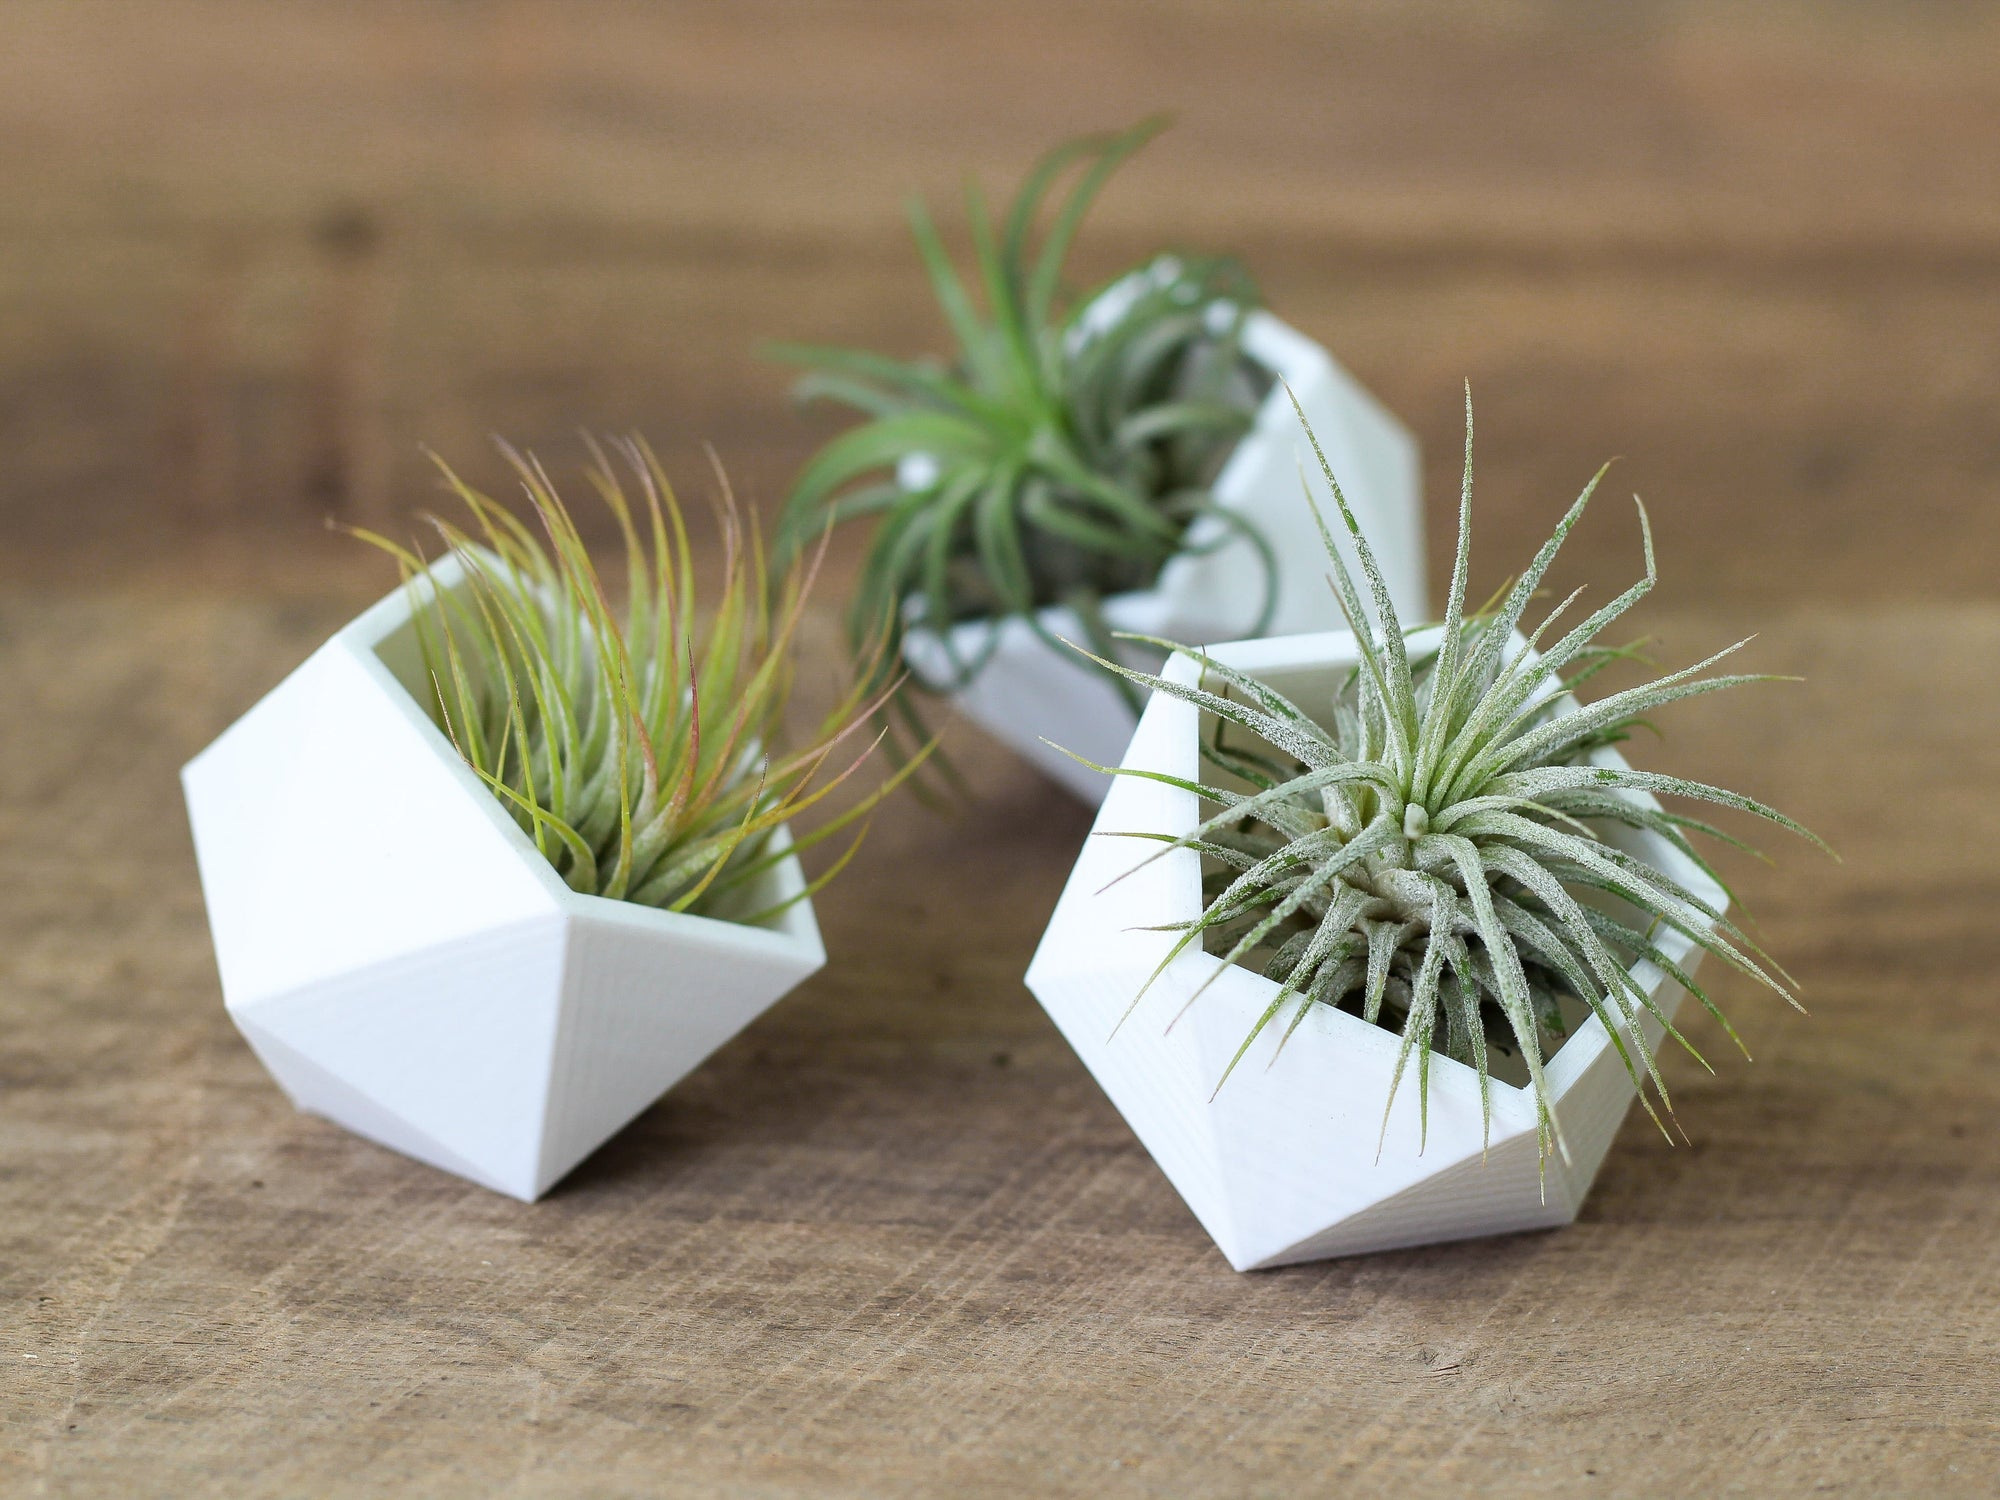 Wholesale Geometric Air Plant Holders with Ionantha Air Plants